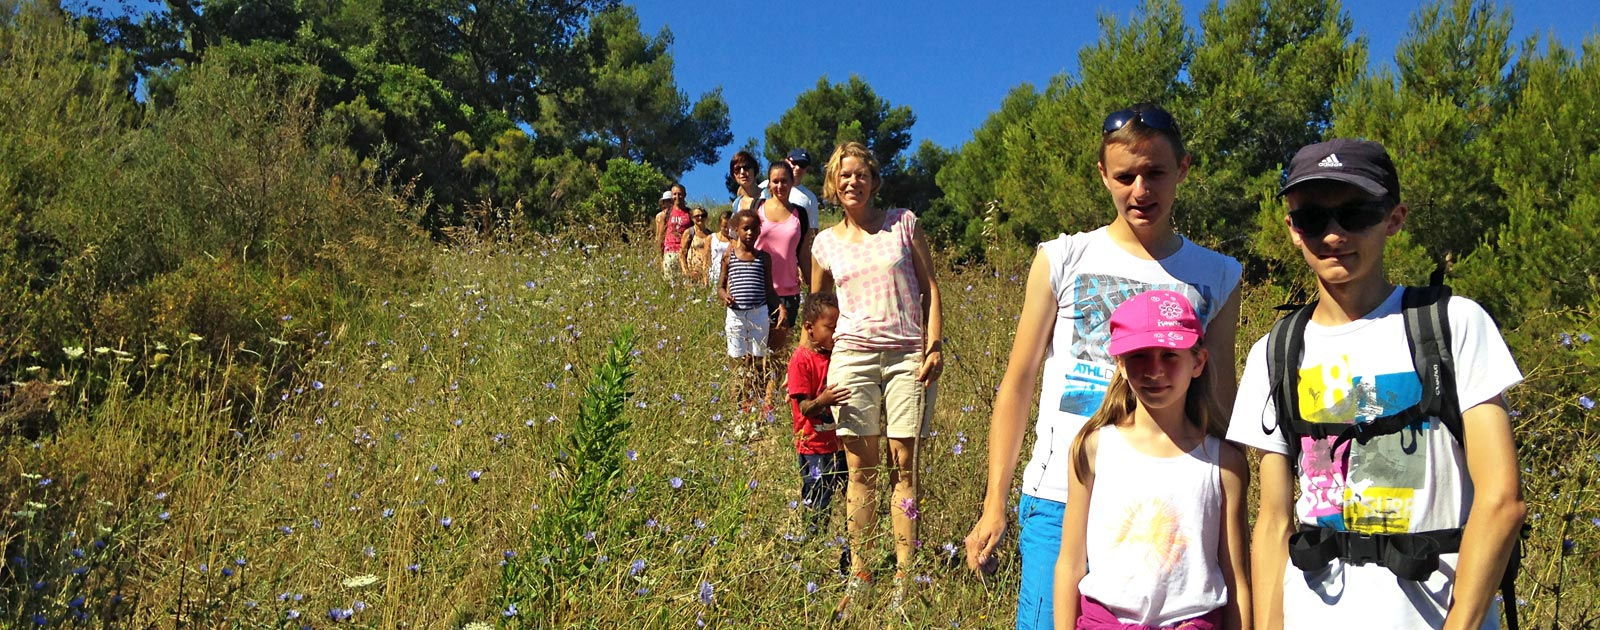 hiking in provence